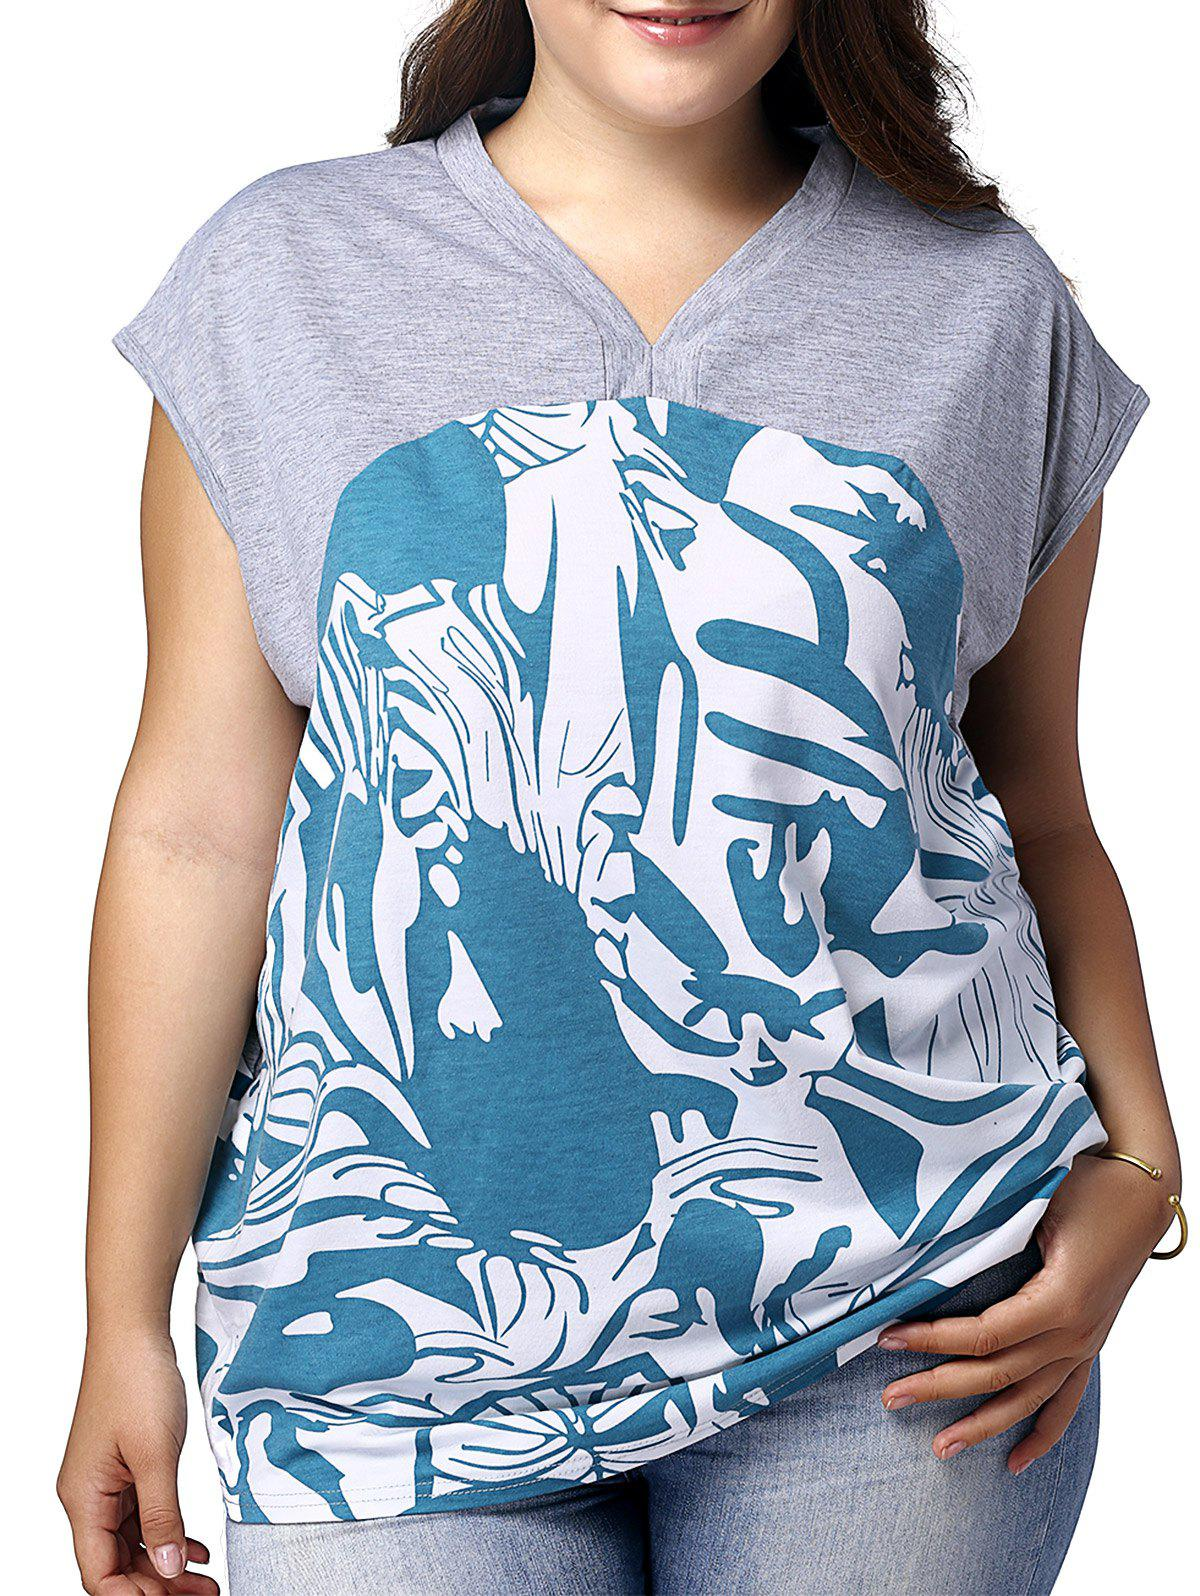 Plus Size Graphic Cap Sleeve V Neck Top - GREY/WHITE/BLUE 3XL